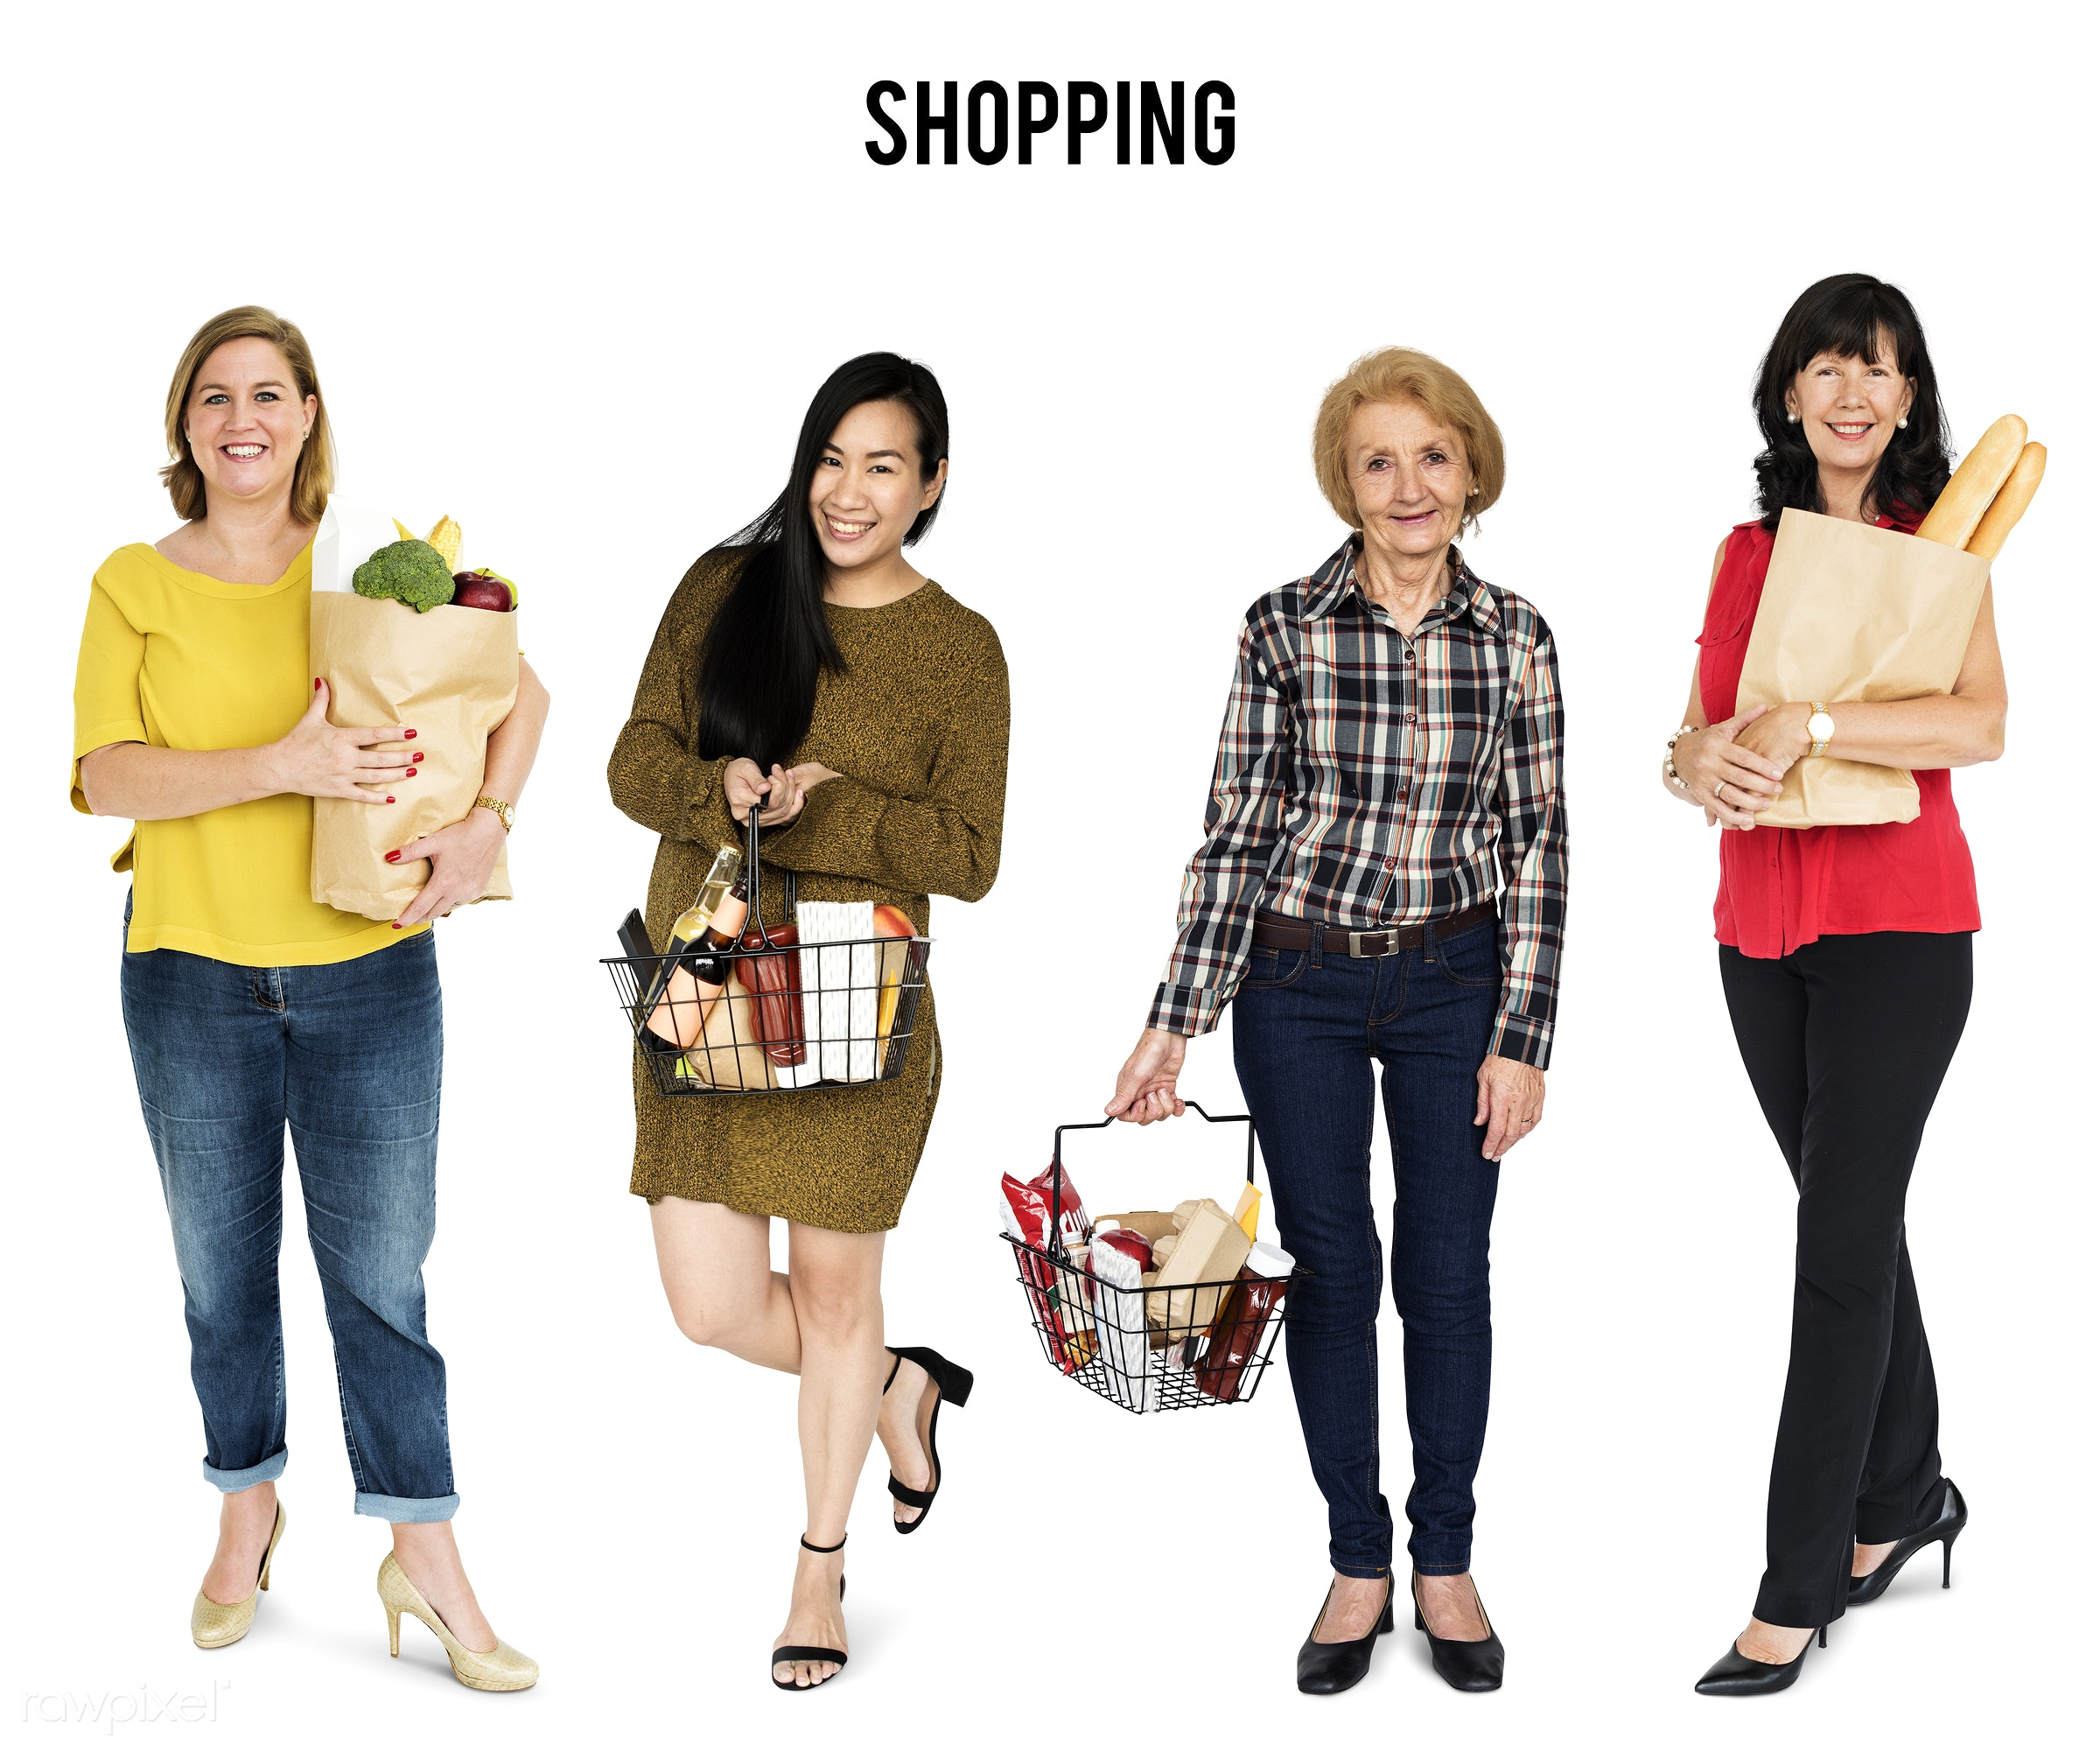 studio, grocery, shop, person, store, diverse, buy, fresh food, consumer, people, caucasian, asian, retirement, grocery...